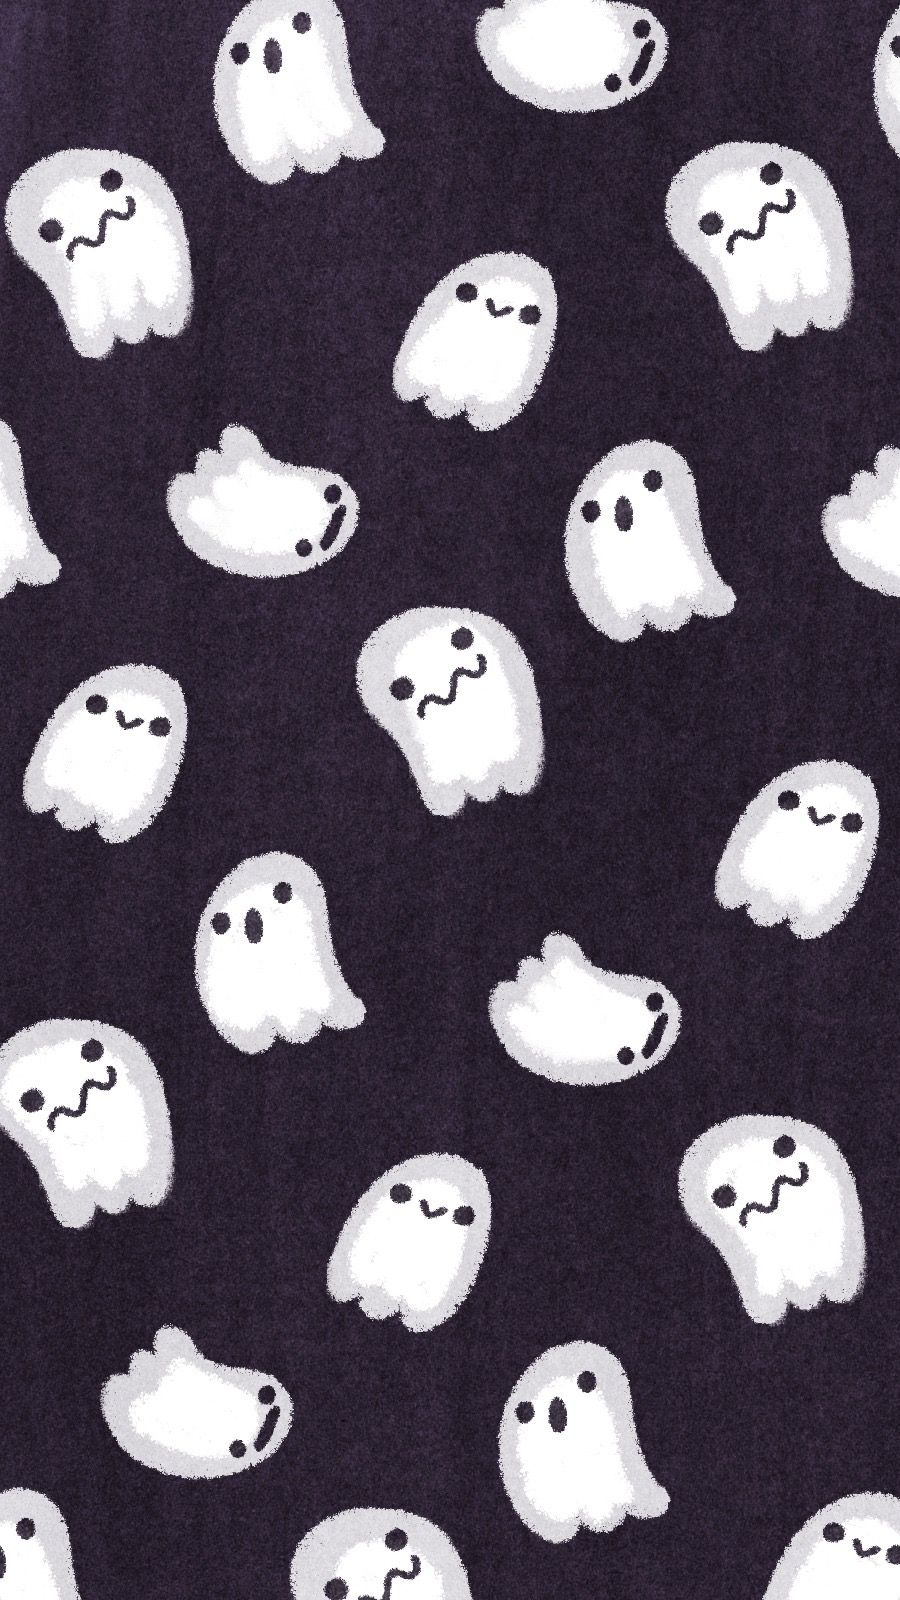 Halloween Ghosts Fall Wallpaper Fall Wallpaper Tumblr Iphone Wallpaper Fall